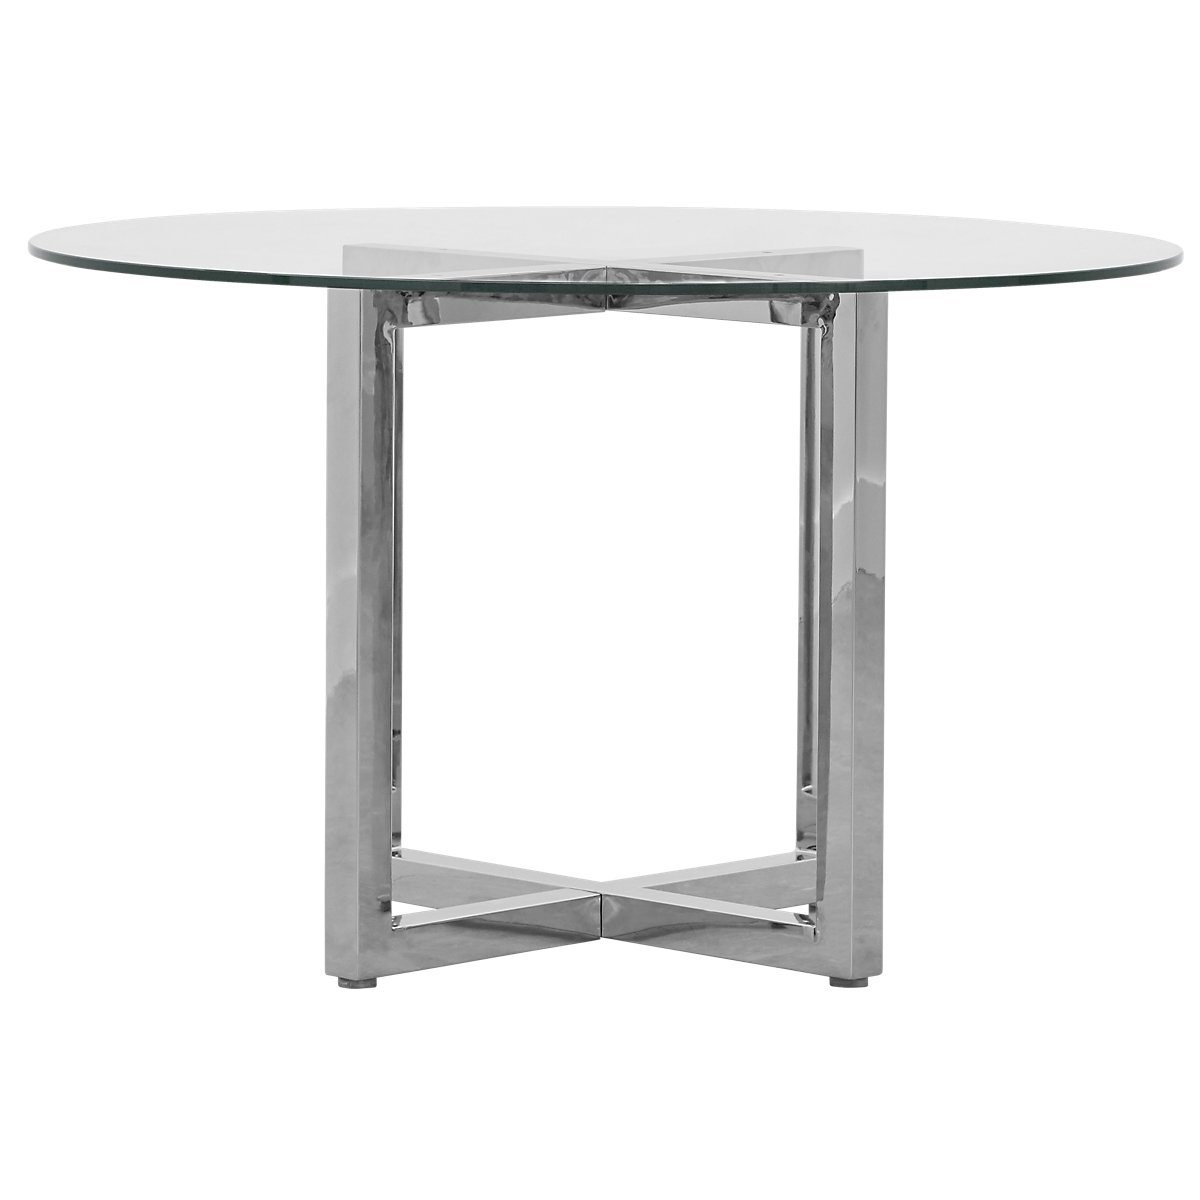 City Furniture Amalfi Glass Round Table